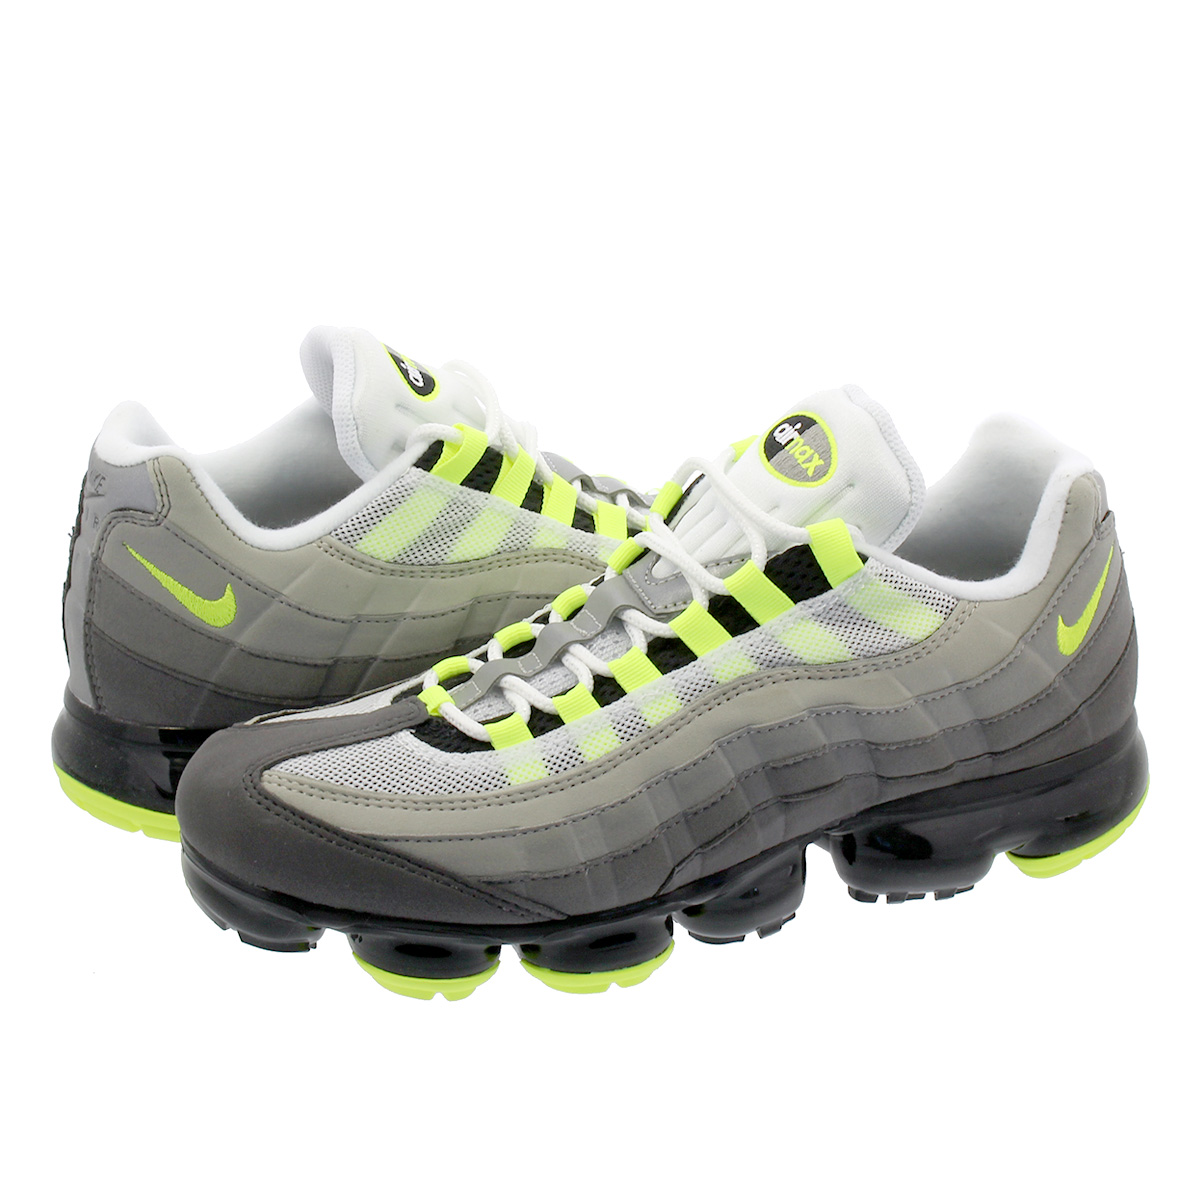 check out 5a379 49cde SELECT SHOP LOWTEX  NIKE AIR VAPORMAX 95 Nike air vapor max 95  BLACK VOLT MEDIUM ASH DARK PEWTER DUST GRANITE aj7292-001   Rakuten Global  Market